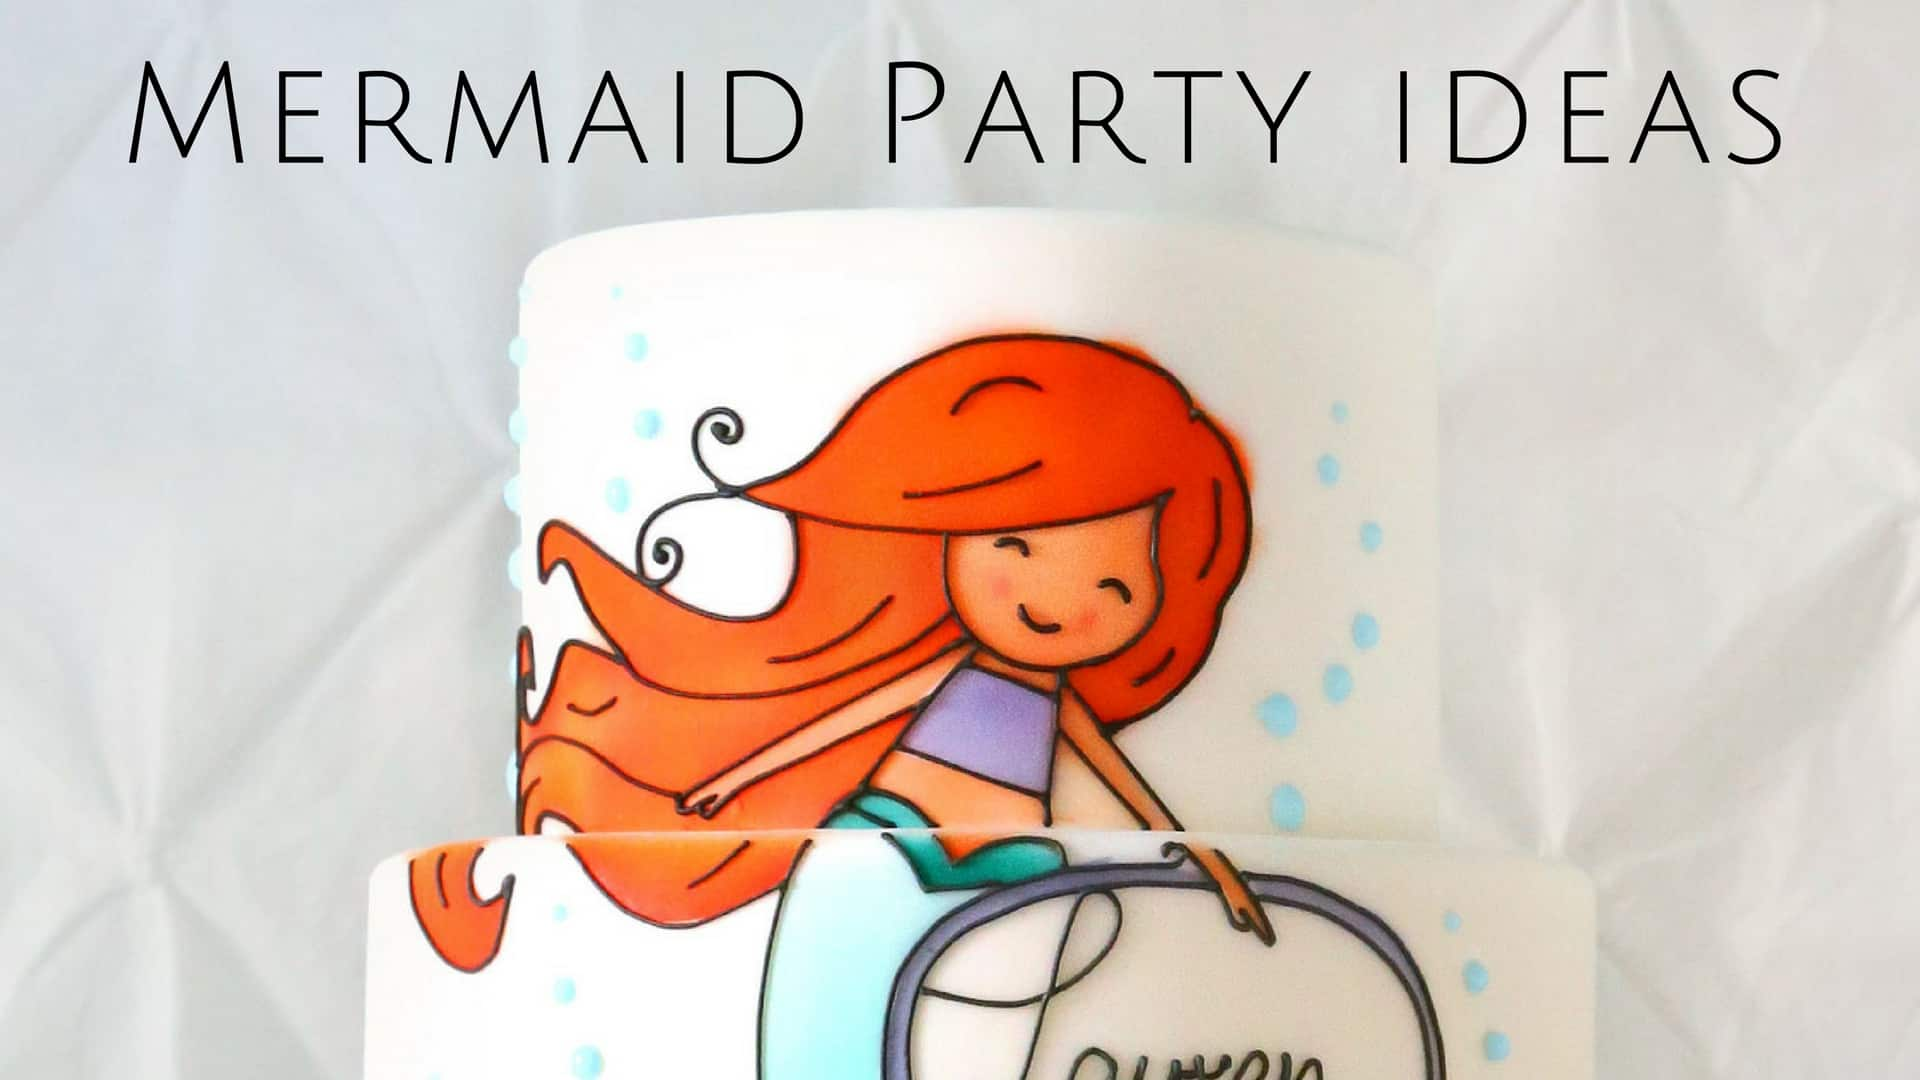 Mermaid Gift Ideas Mermaid Party Ideas From Invitations To Party Favors